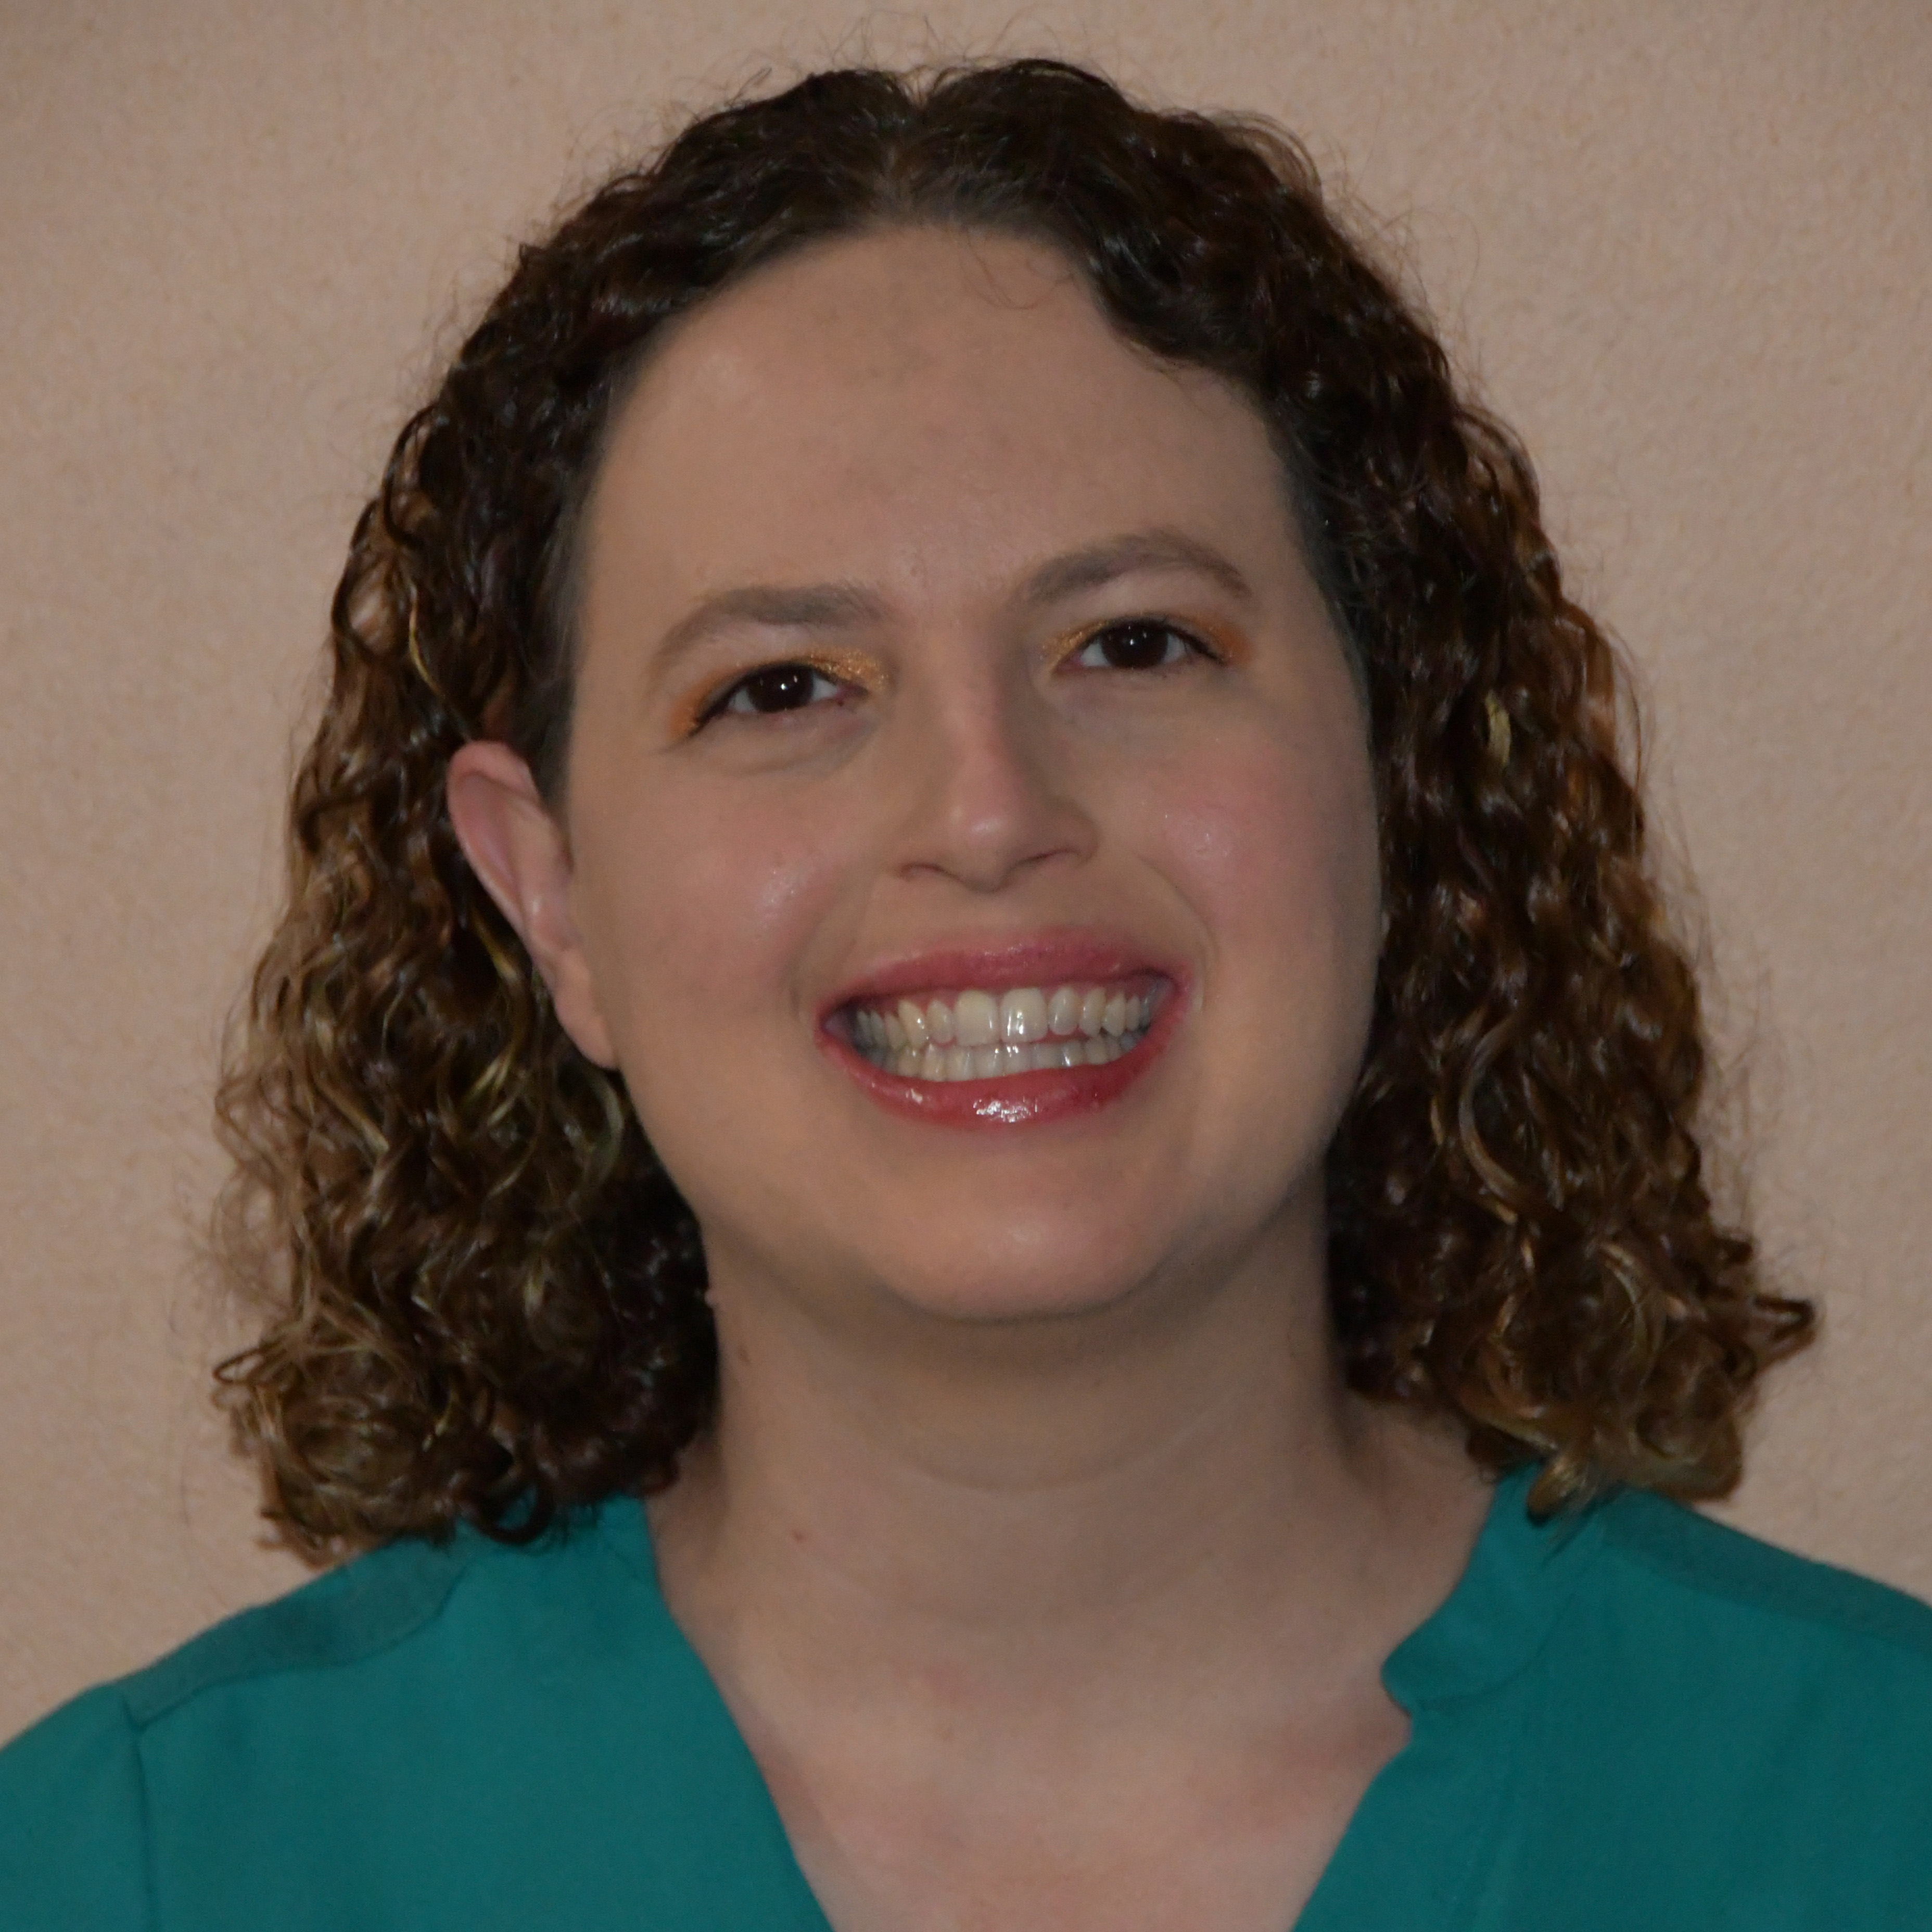 Riverview FL director of ABA operations, Emily Wade